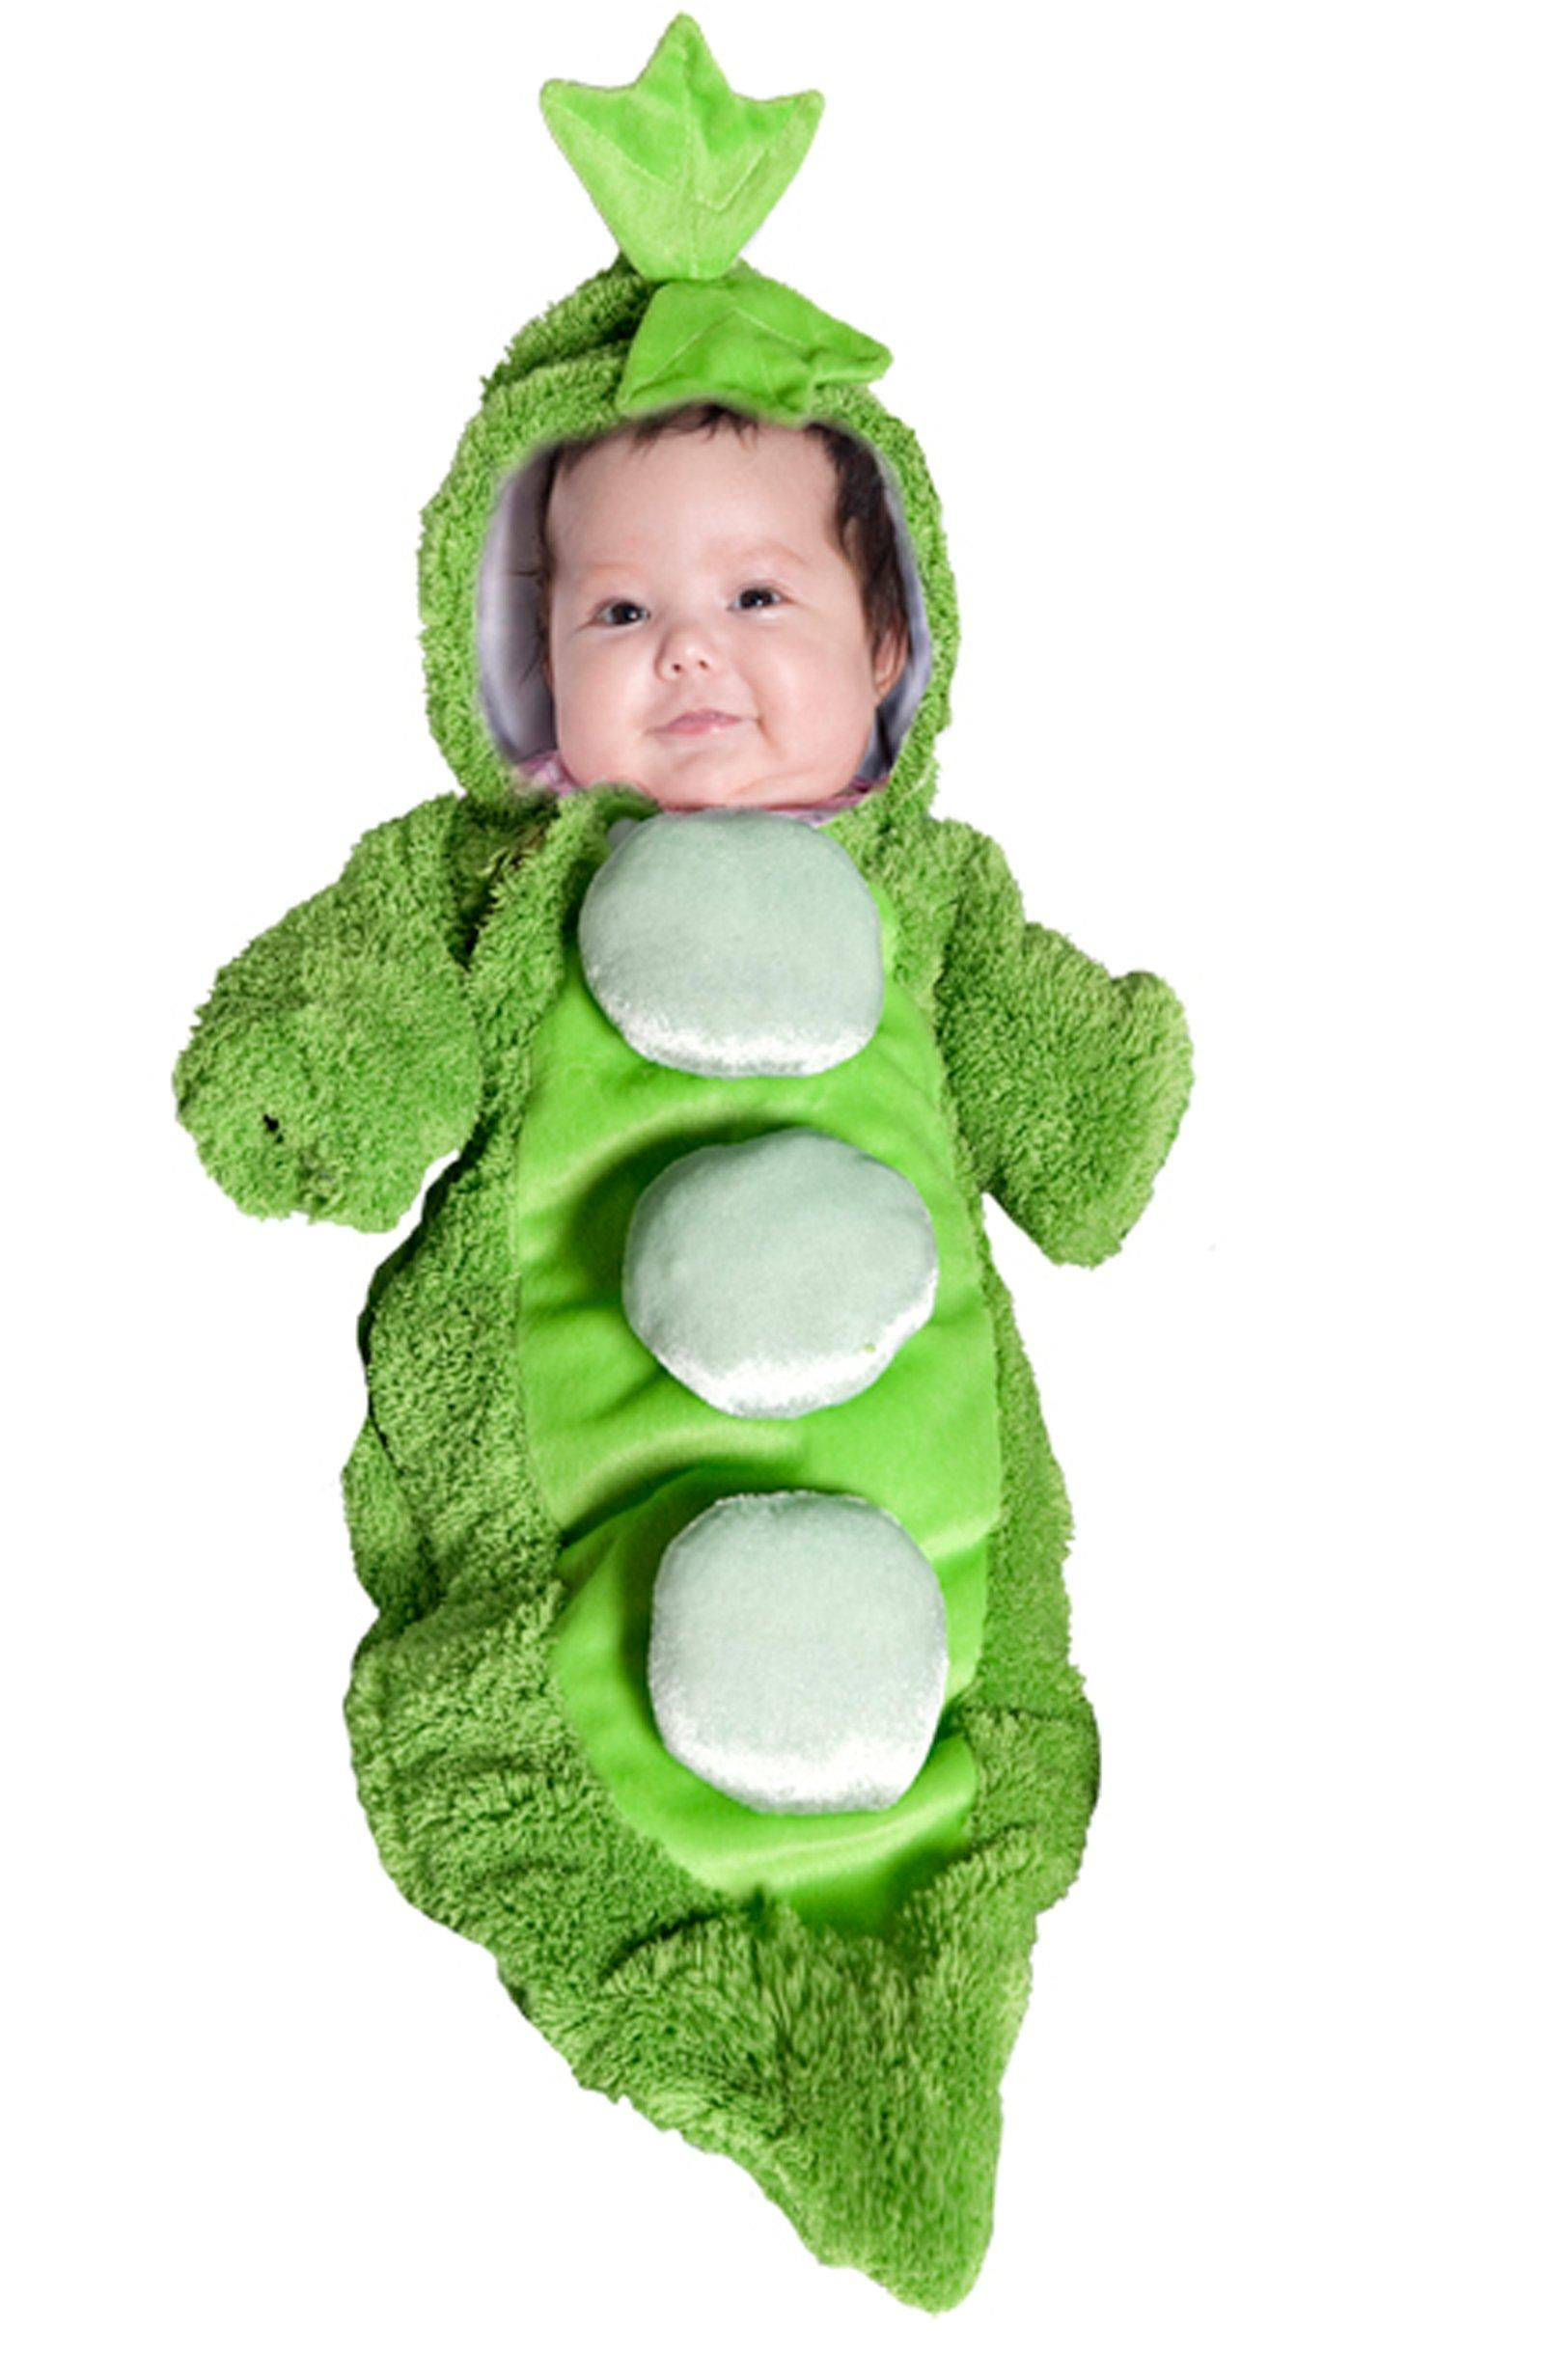 pea in a pod bunting infant costume [70642] - hk$288.00 : let's